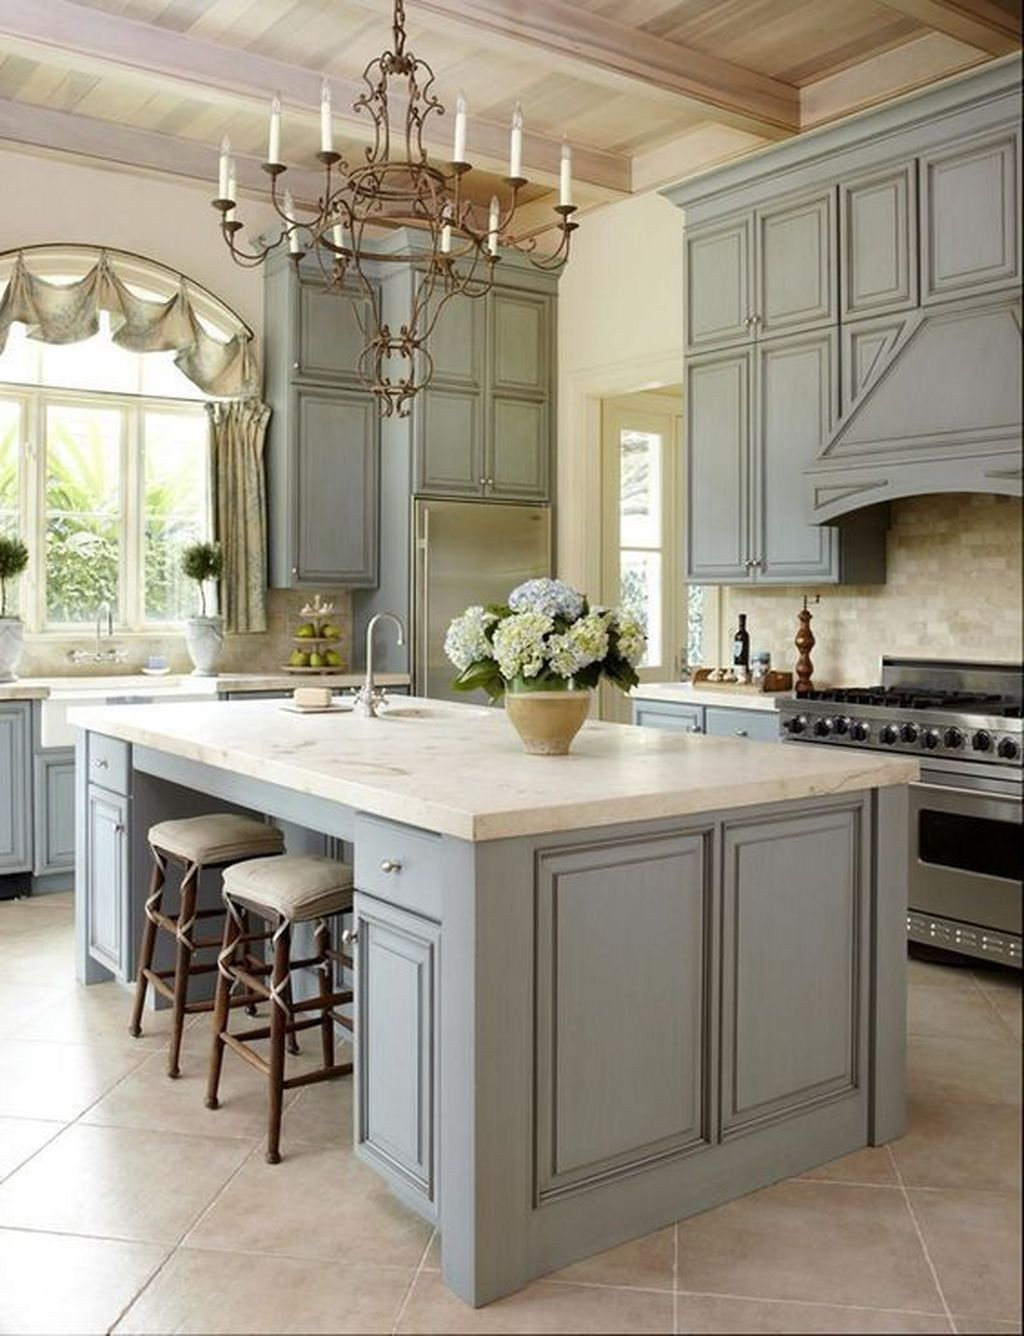 Amazing Country Decorating Ideas For Unique Home 967: Amazing French Country Home Decoration Ideas 45